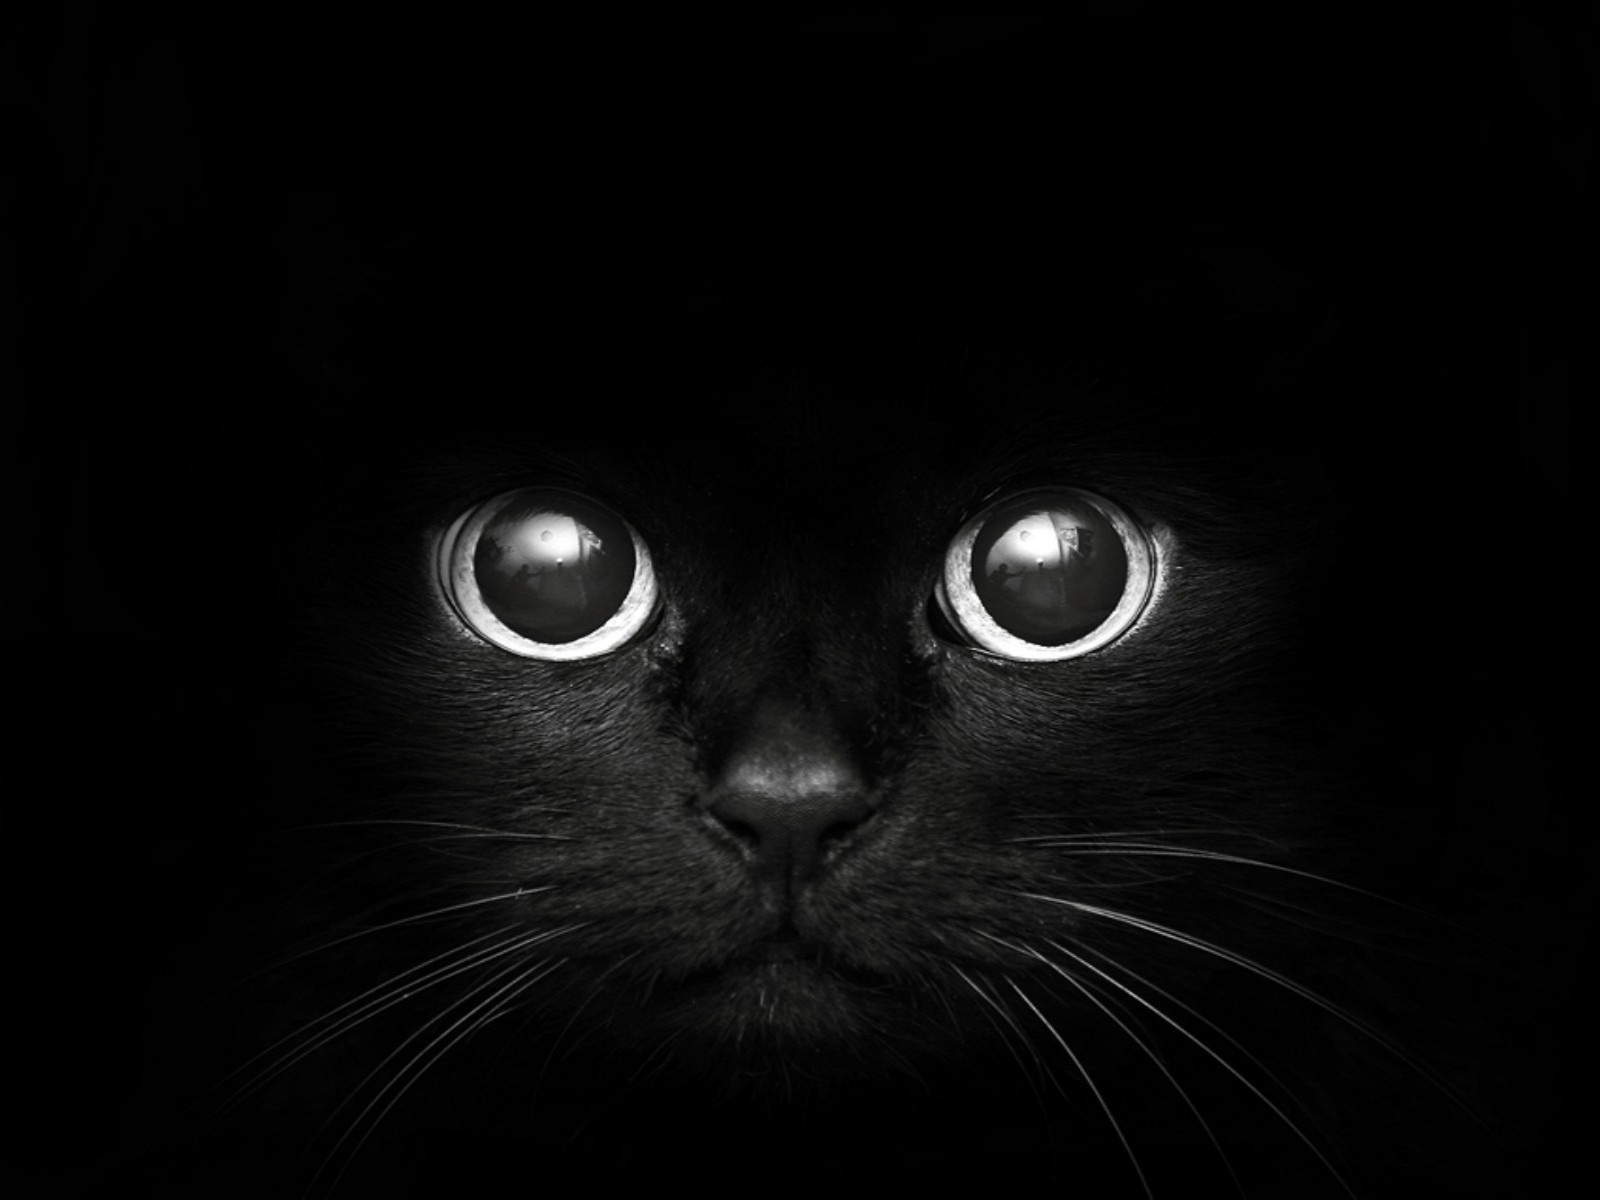 black cat hd wallpaper